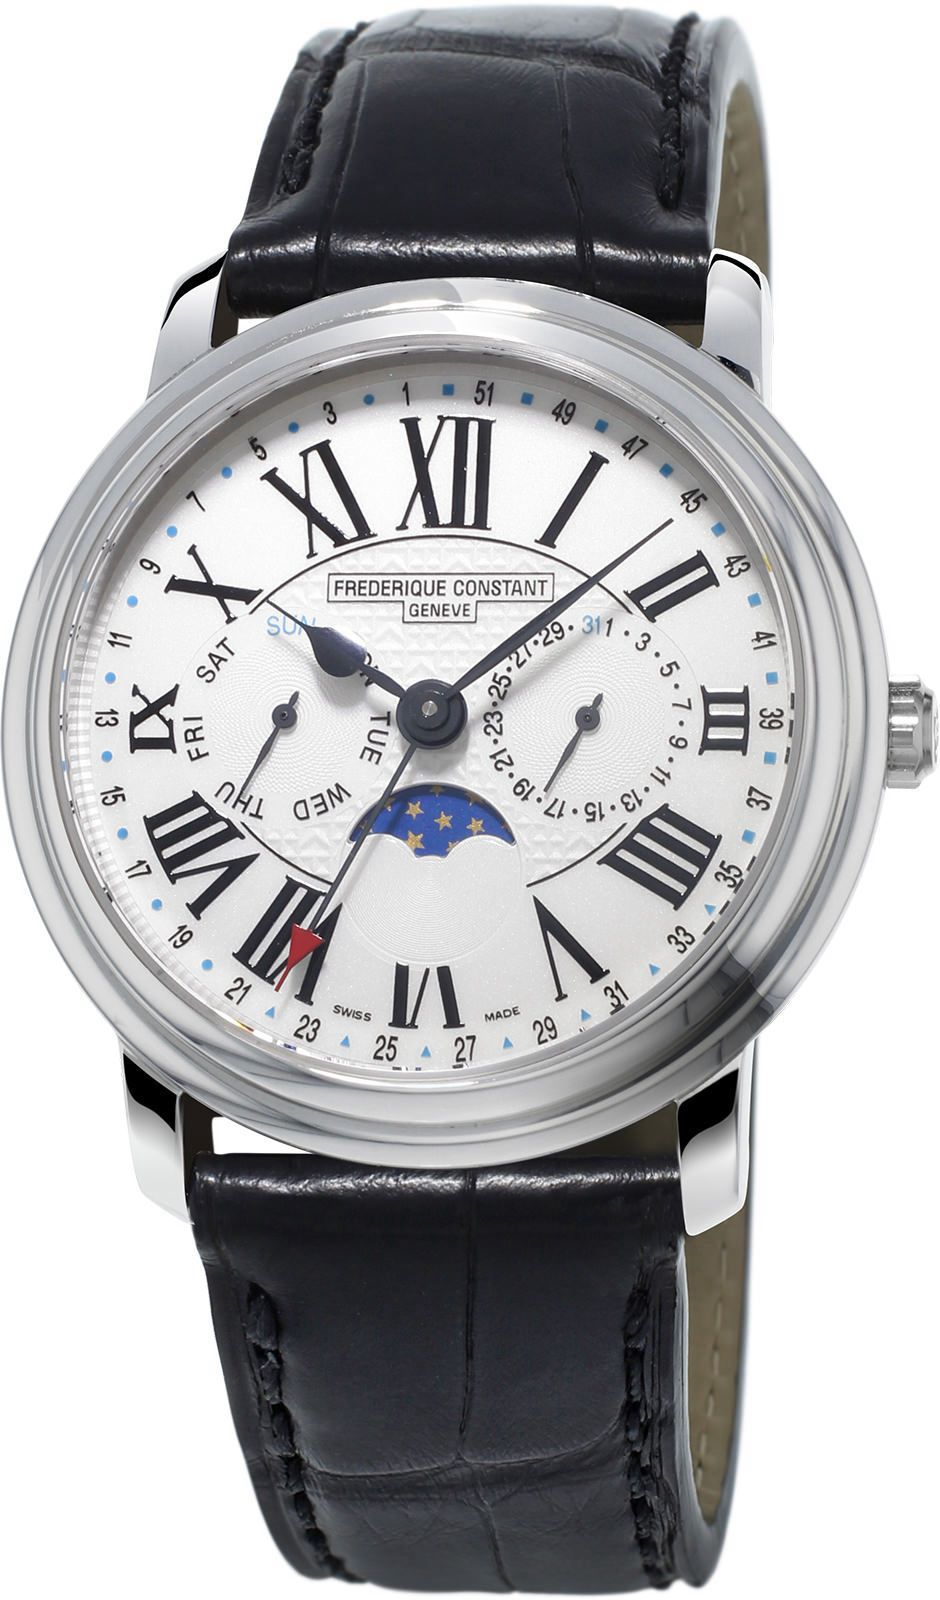 Silver Dial and Leather Strap Men's Watch